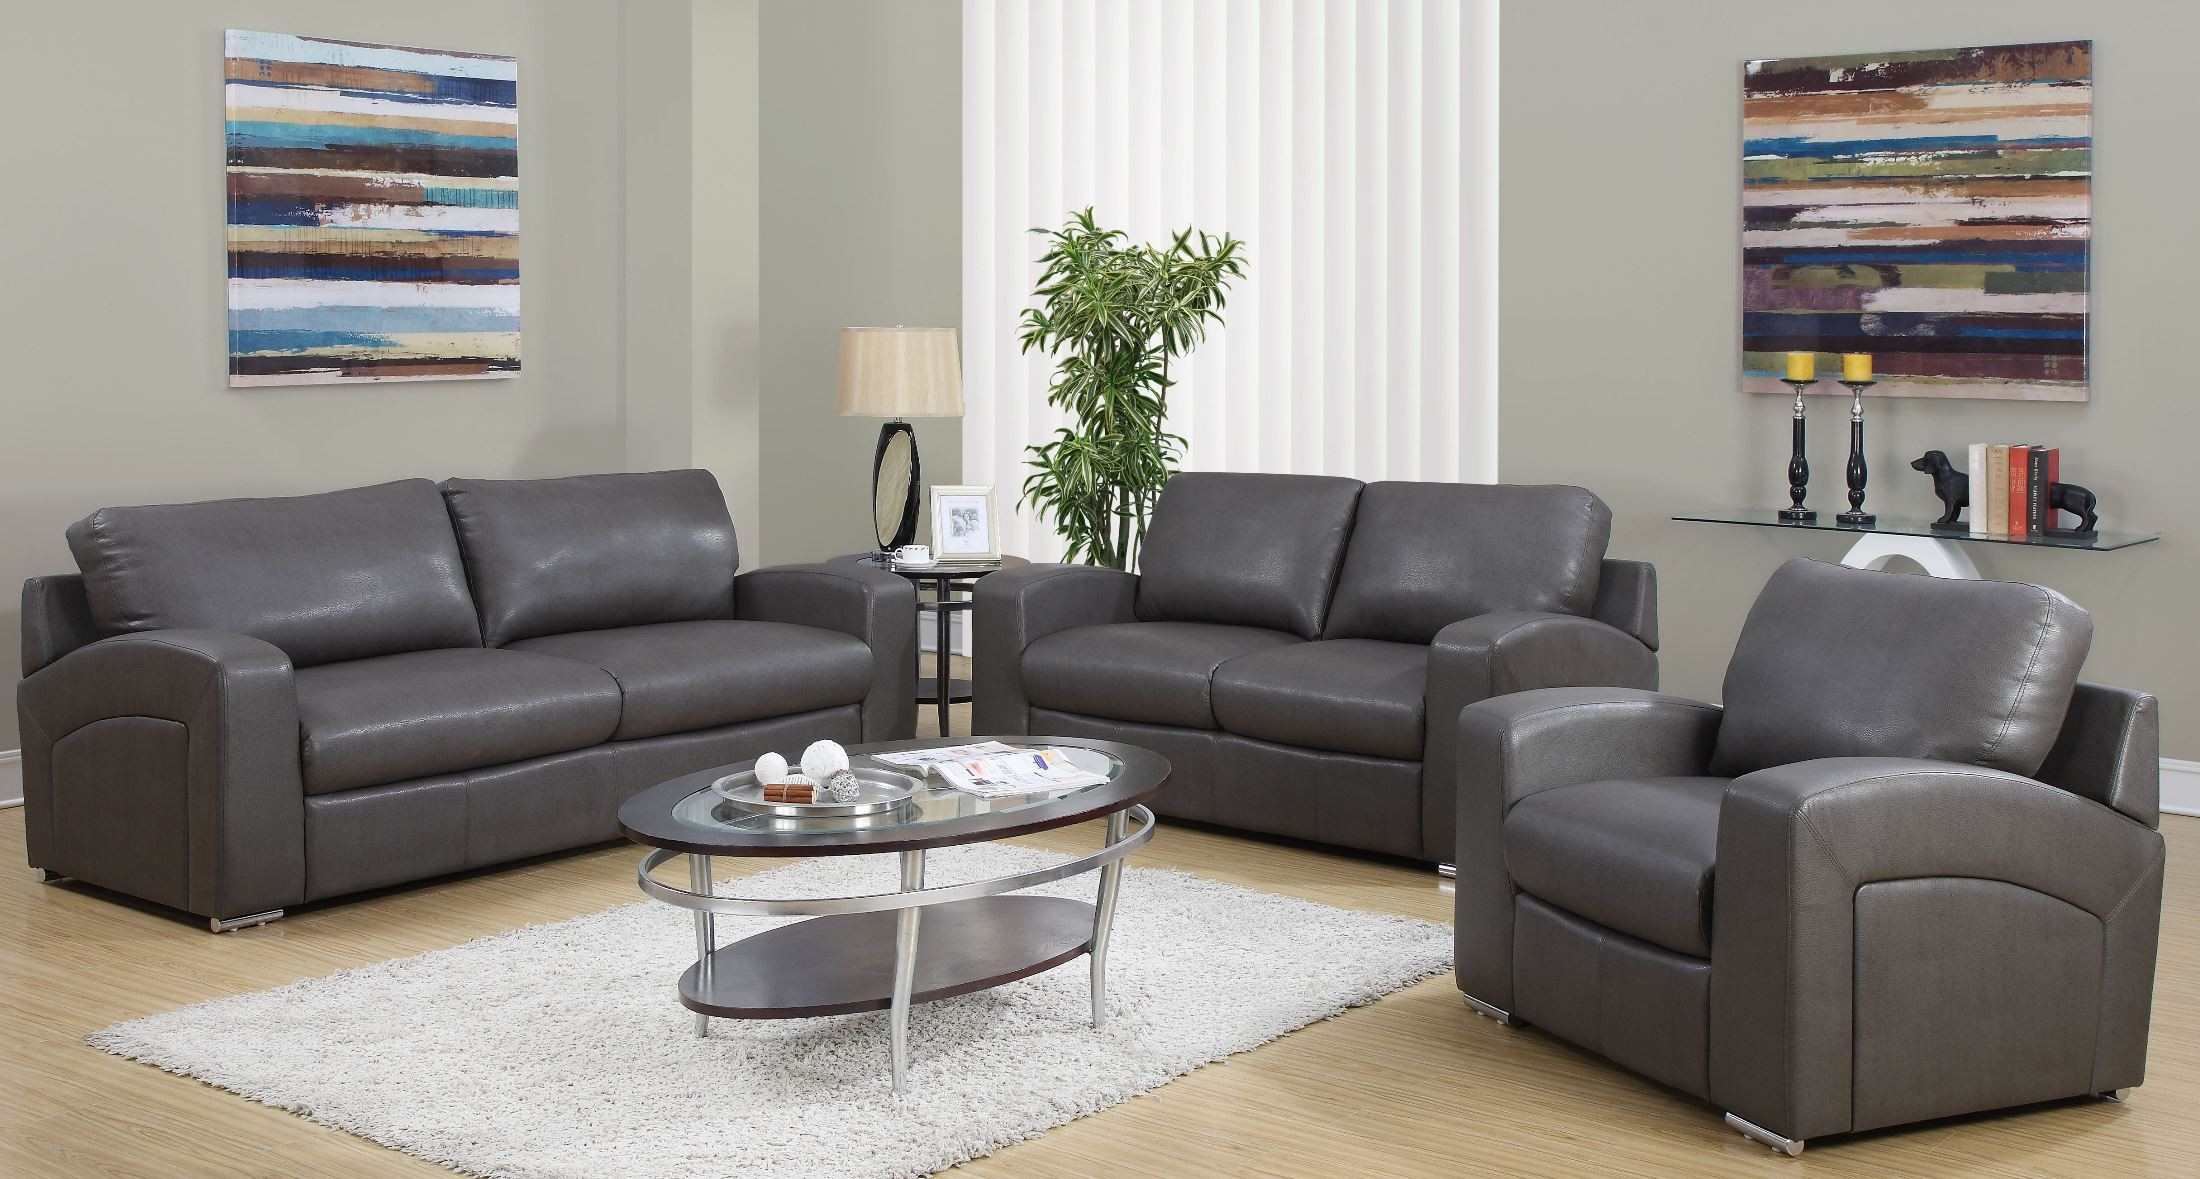 Charcoal Gray Match Living Room Set From Monarch (8503GY